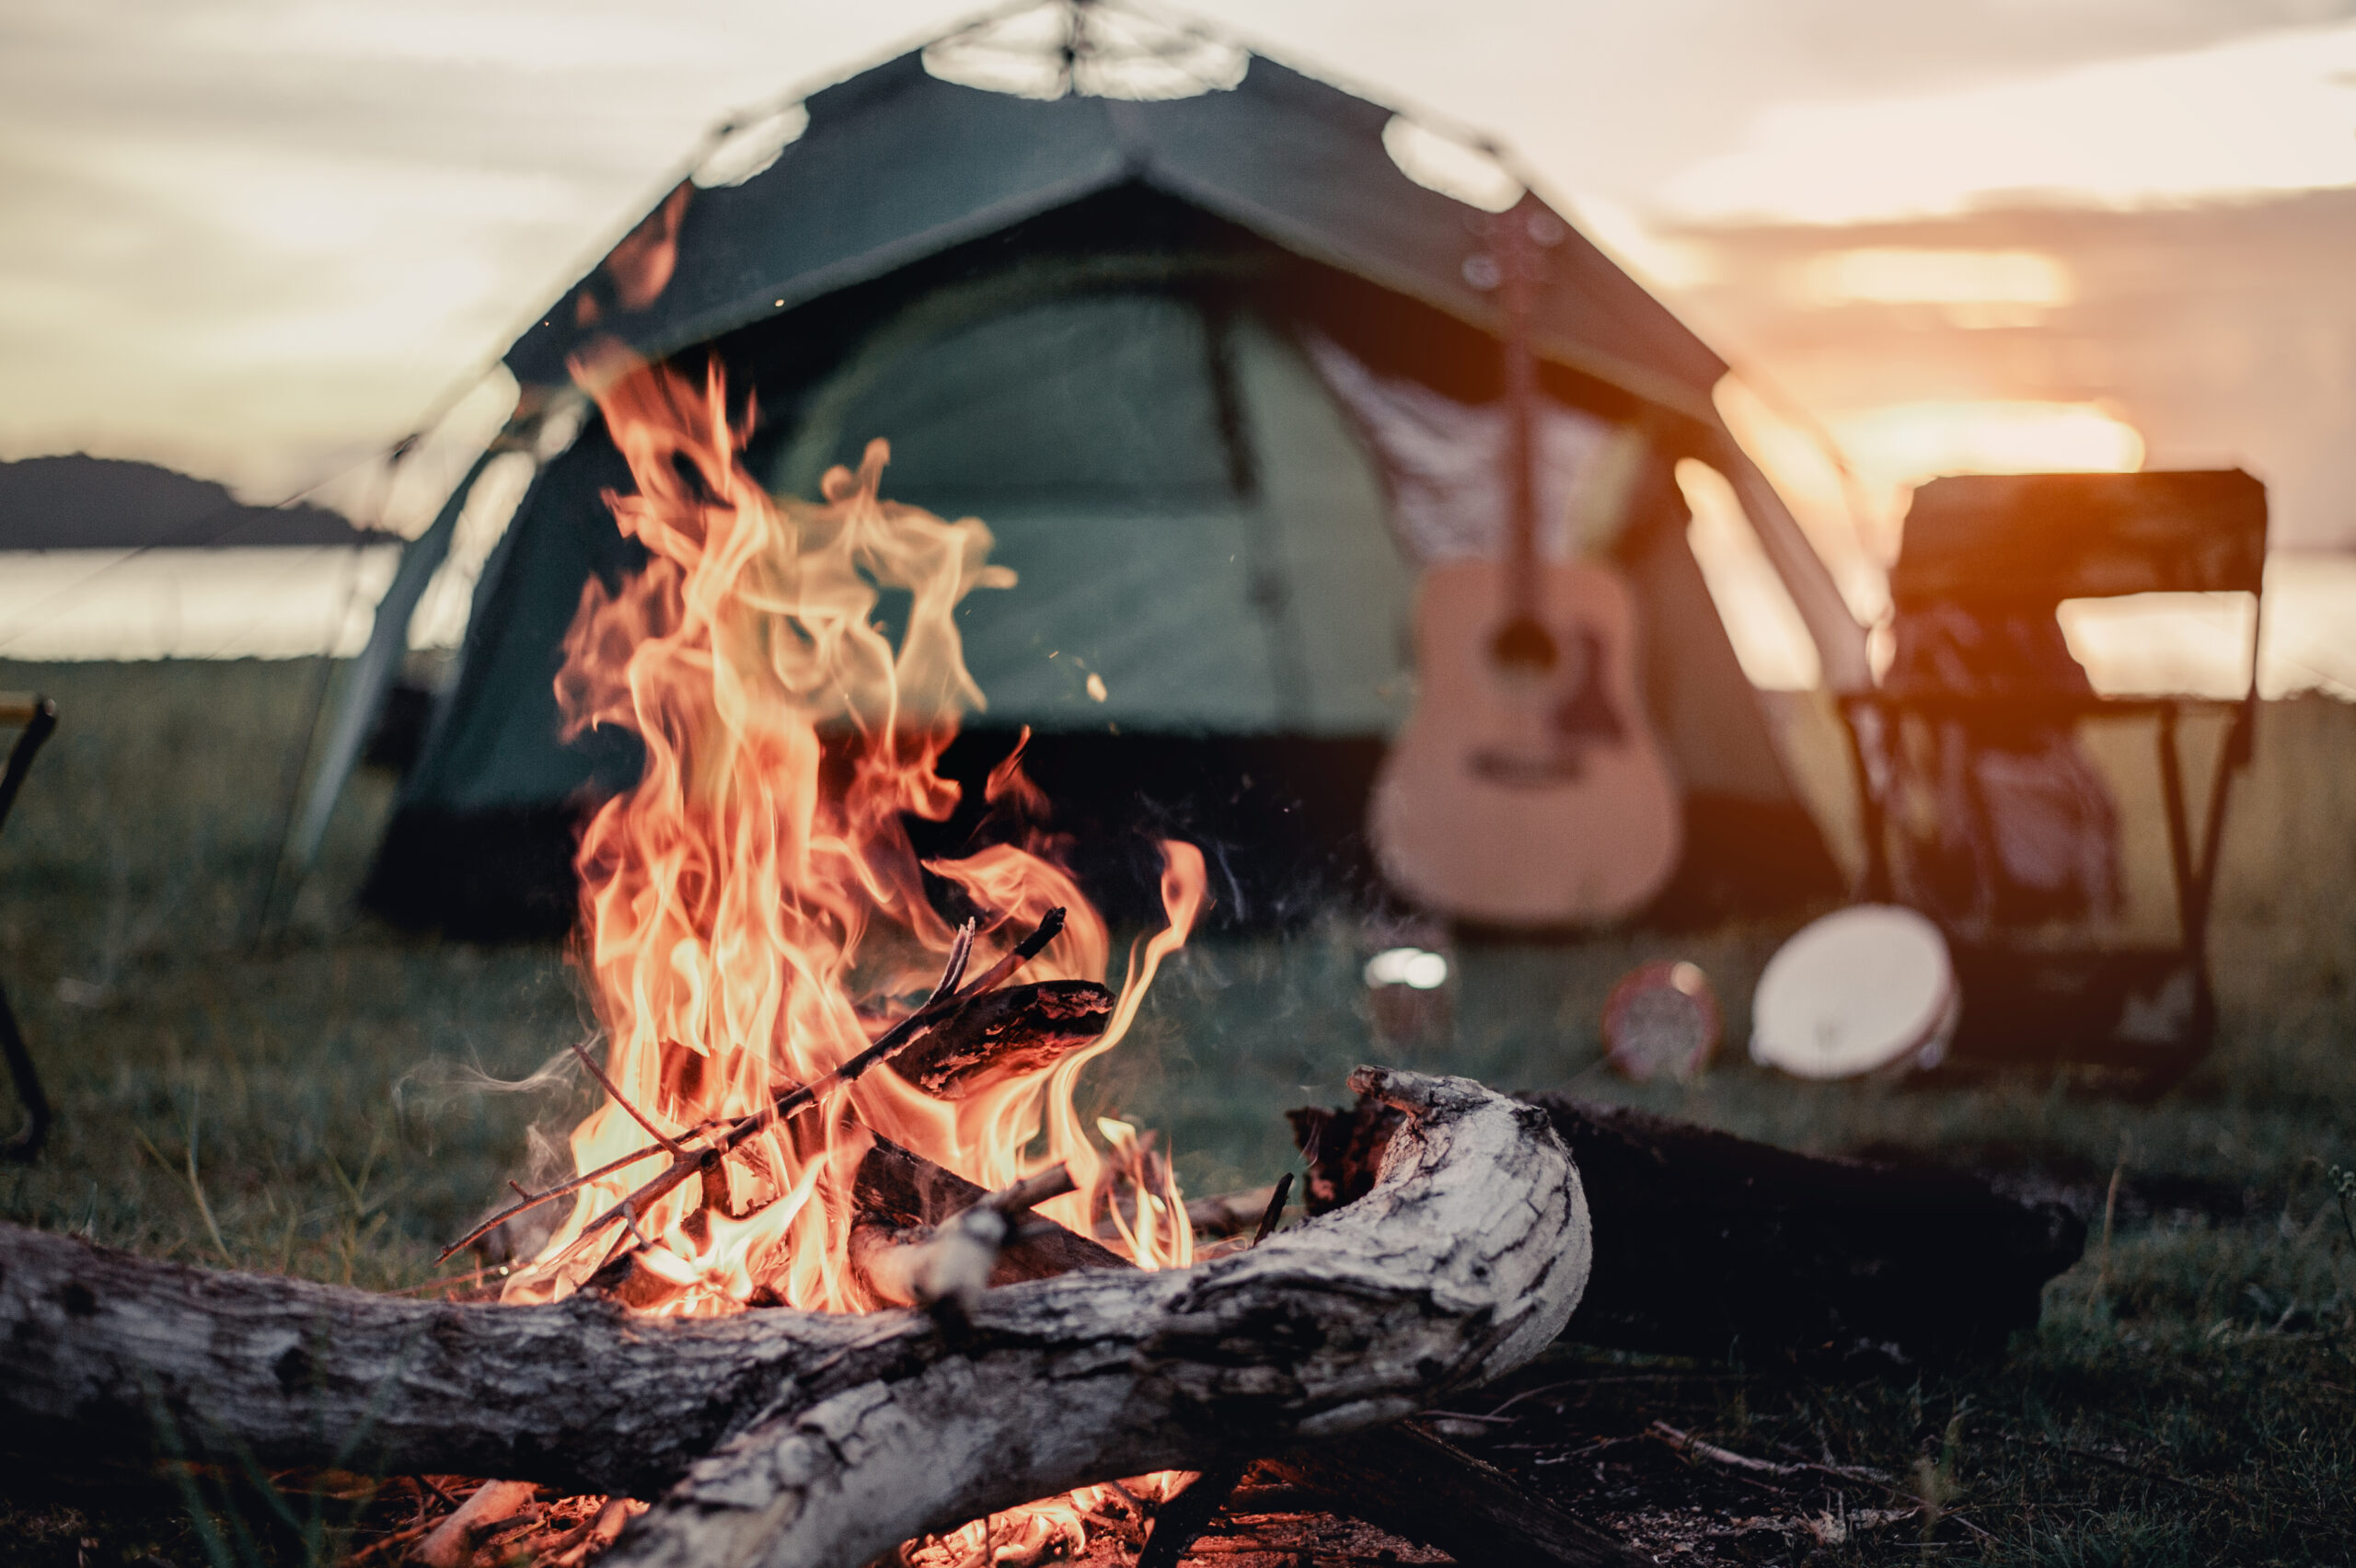 Going camping is a safe way to enjoy time with family or friends while more than likely avoiding Covid19.